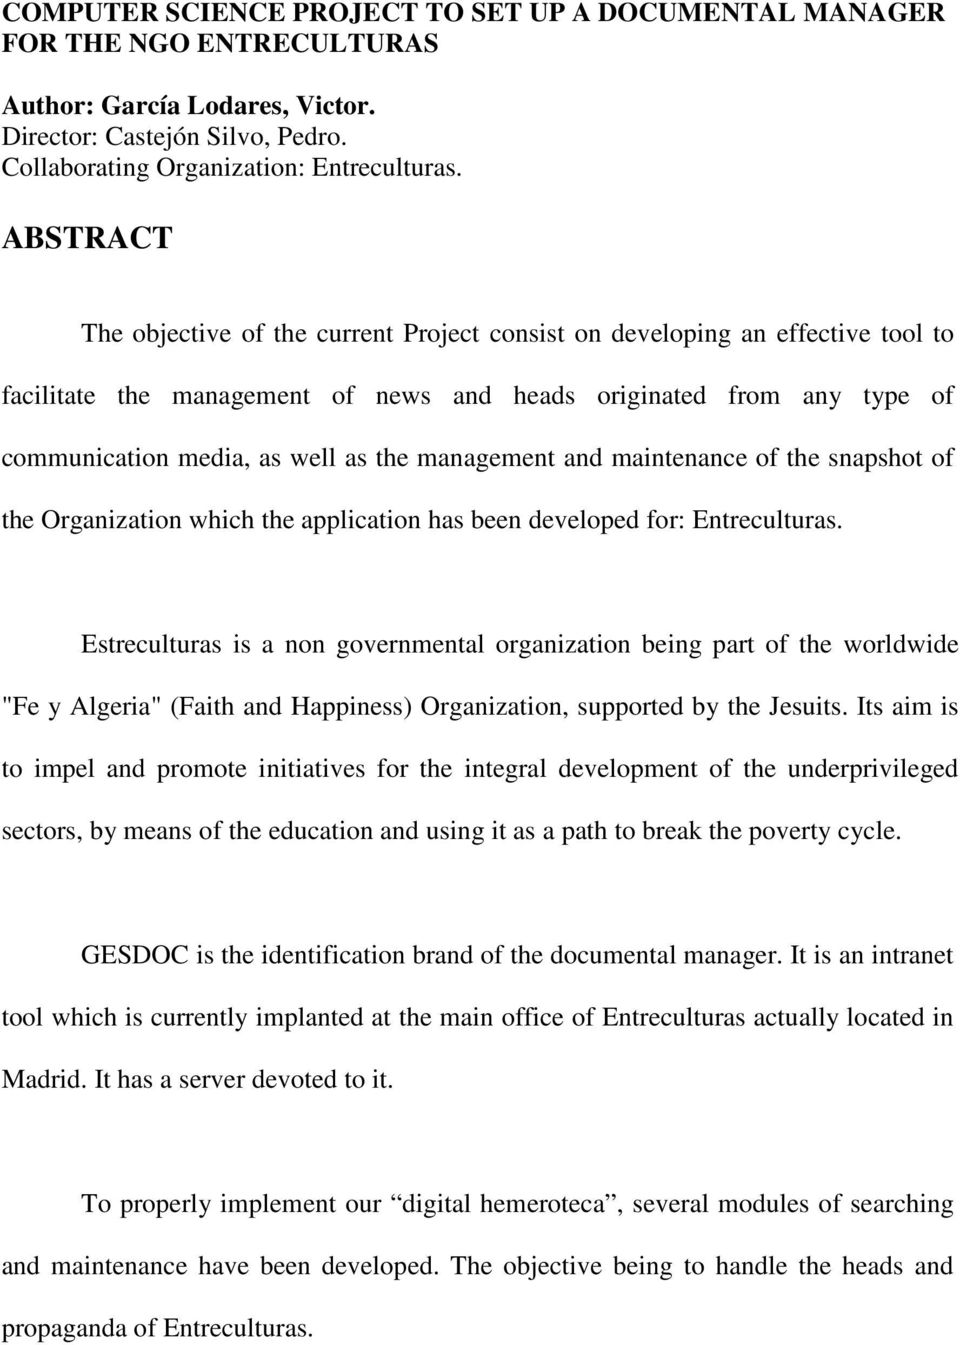 management and maintenance of the snapshot of the Organization which the application has been developed for: Entreculturas.